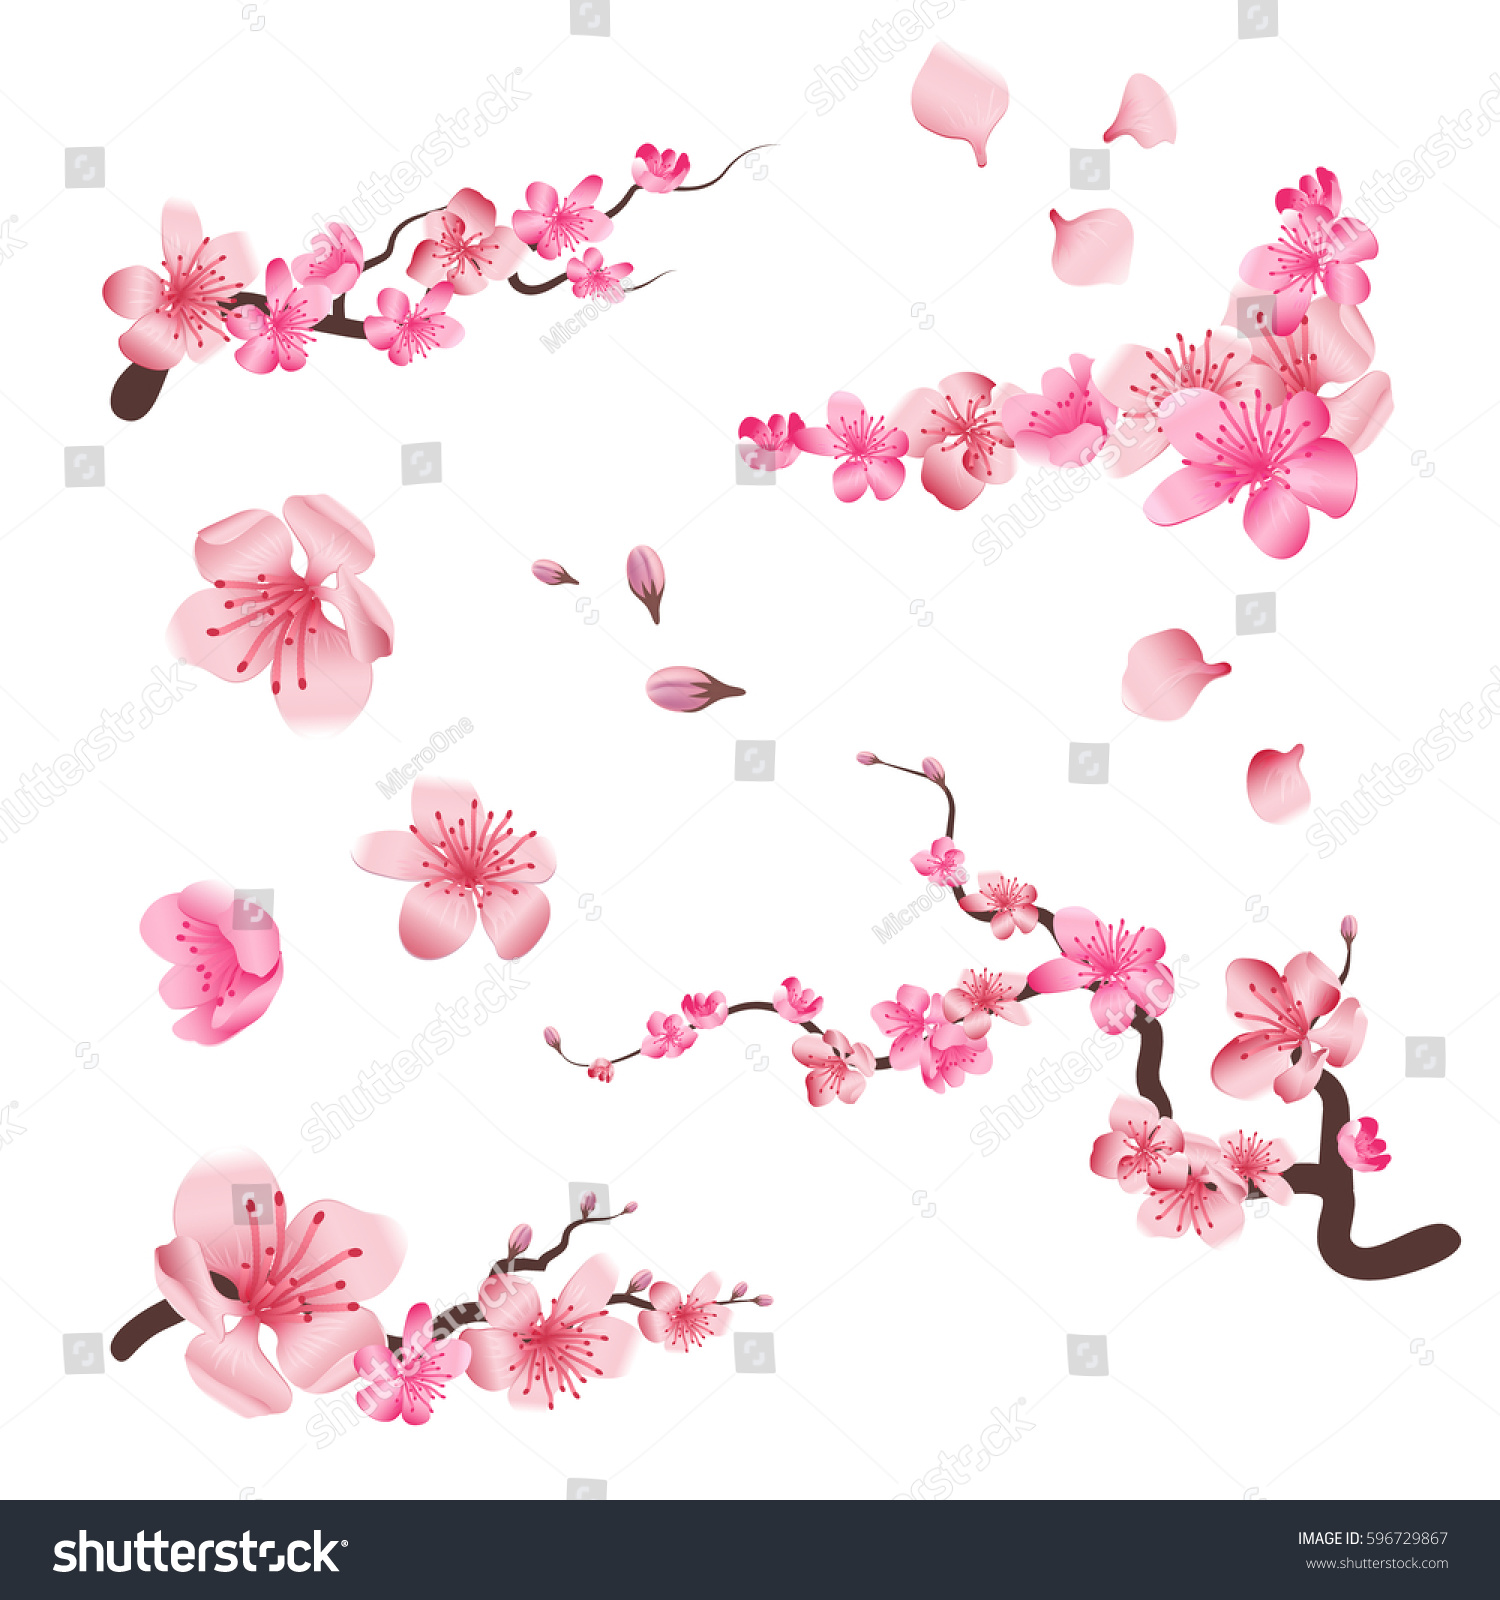 Spring sakura cherry blooming flowers, pink petals and branches vector set for your own design